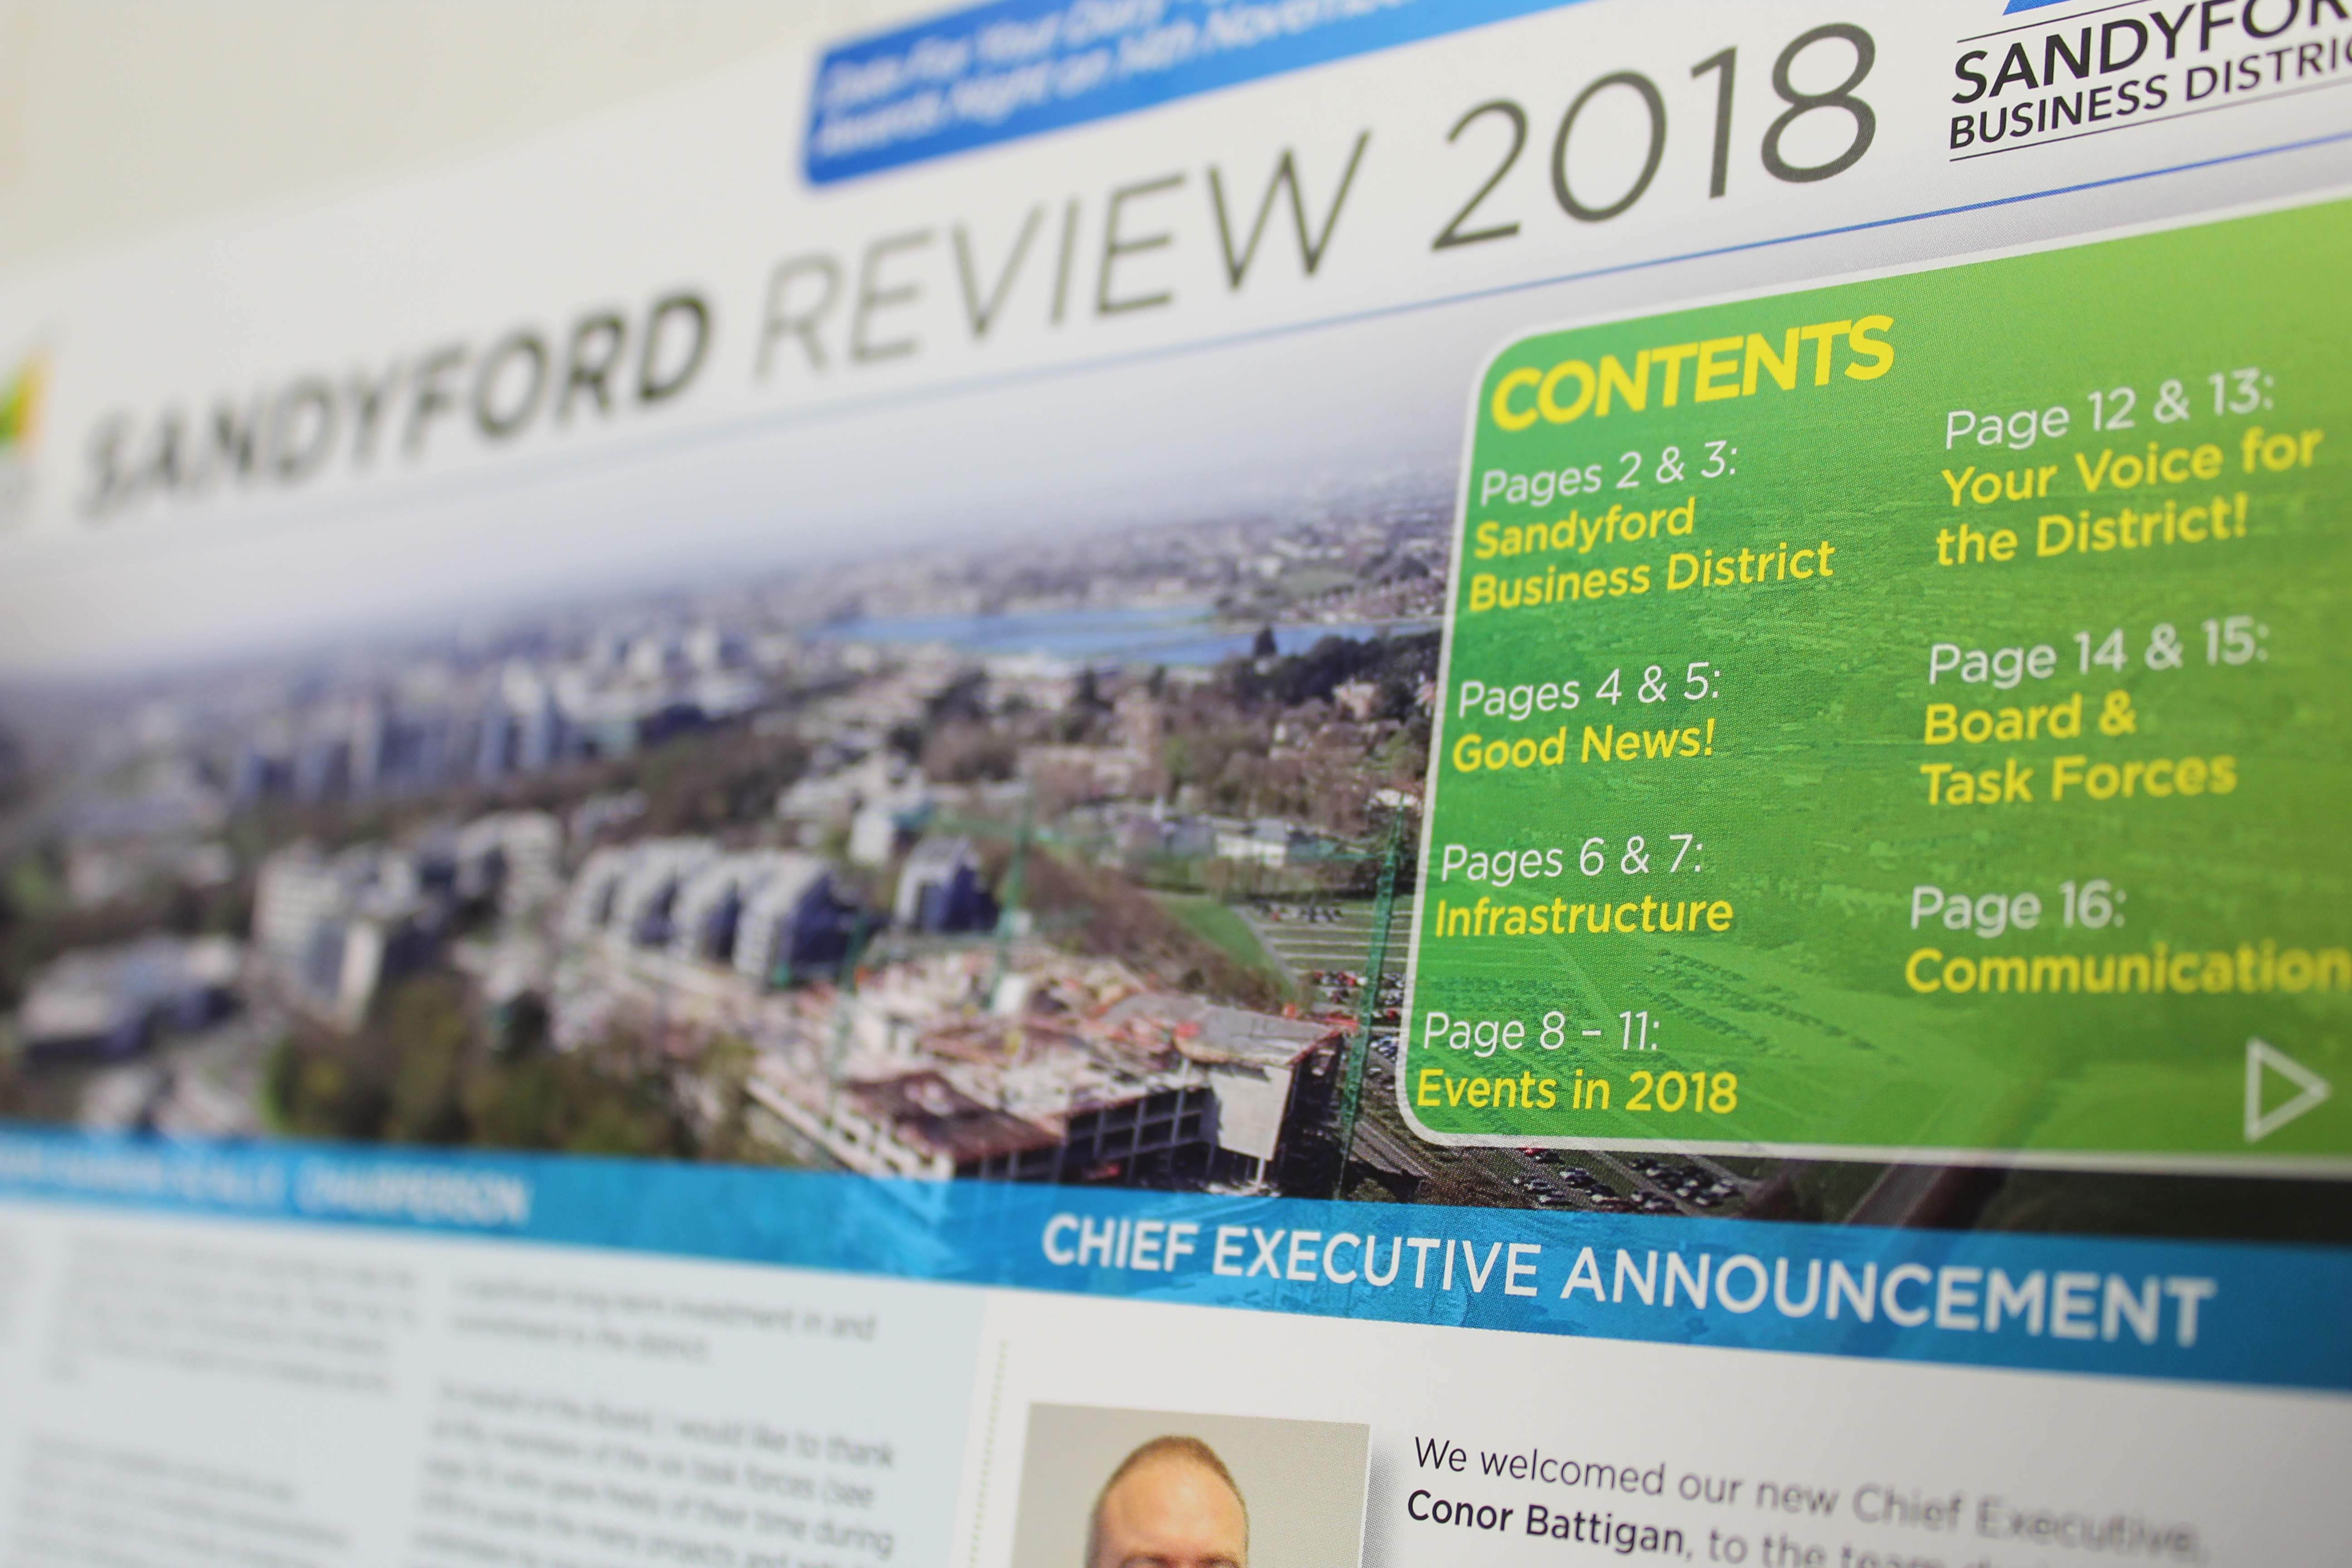 Sandyford Business District Review 2018